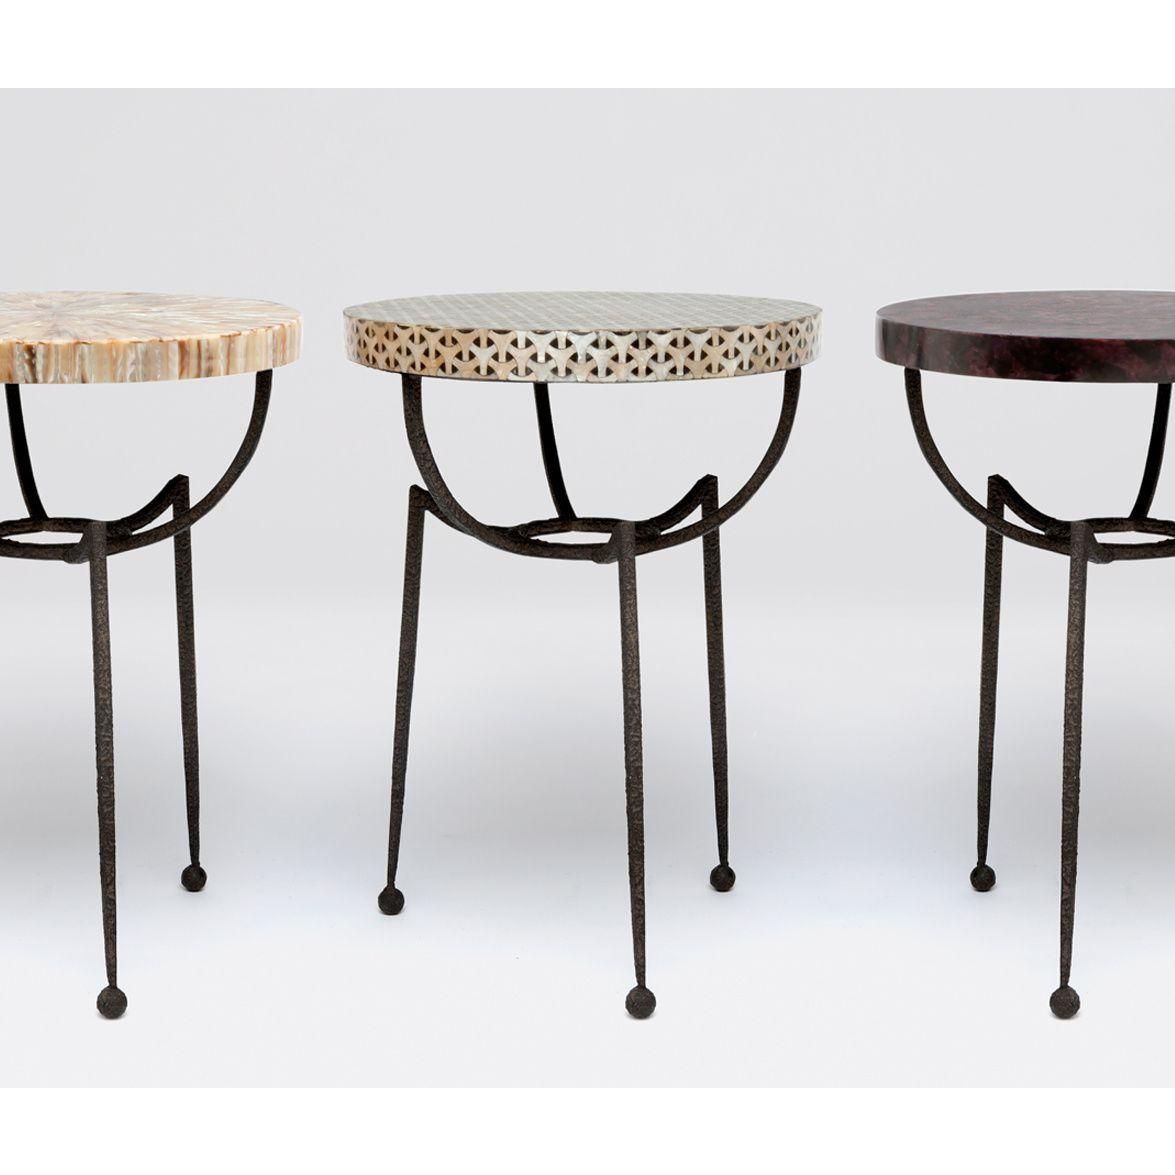 A new inter changeable table base Thin tapered legs form a